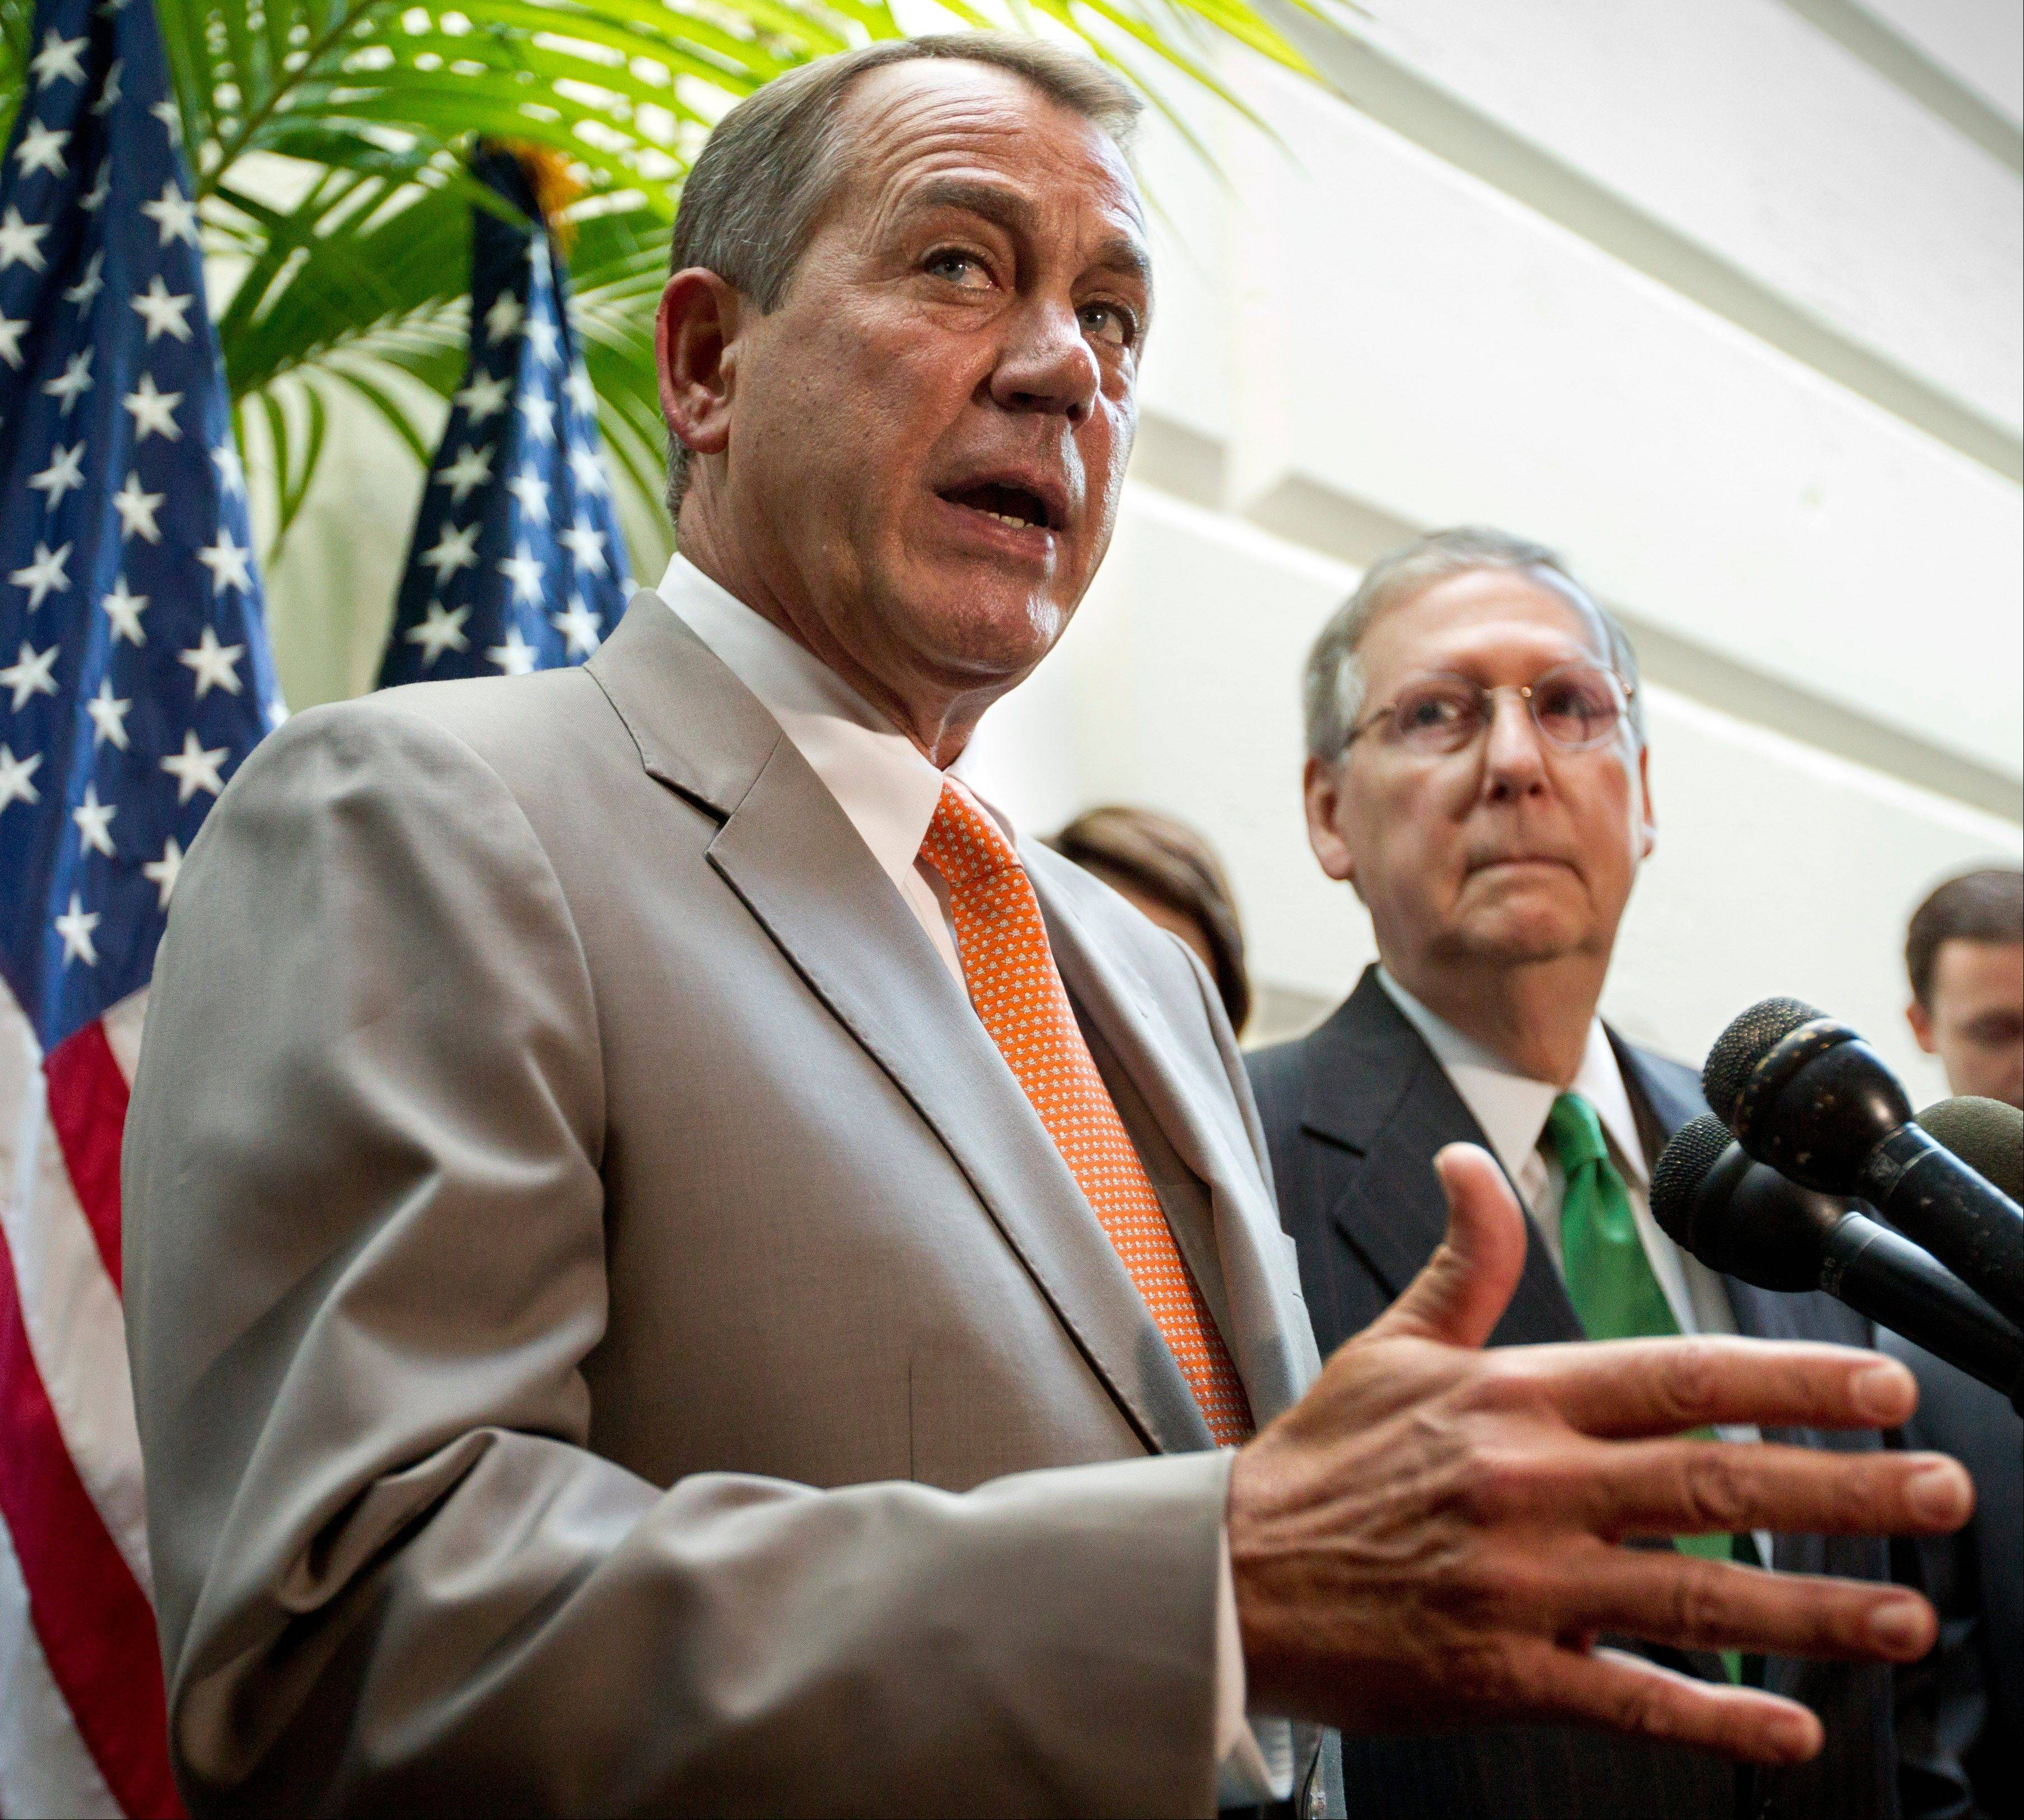 House Speaker John Boehner, accompanied by Senate Minority Leader Mitch McConnell, right, will lead Republican efforts in the looming battle with the White House and congressional Democrats over borrowing and spending.